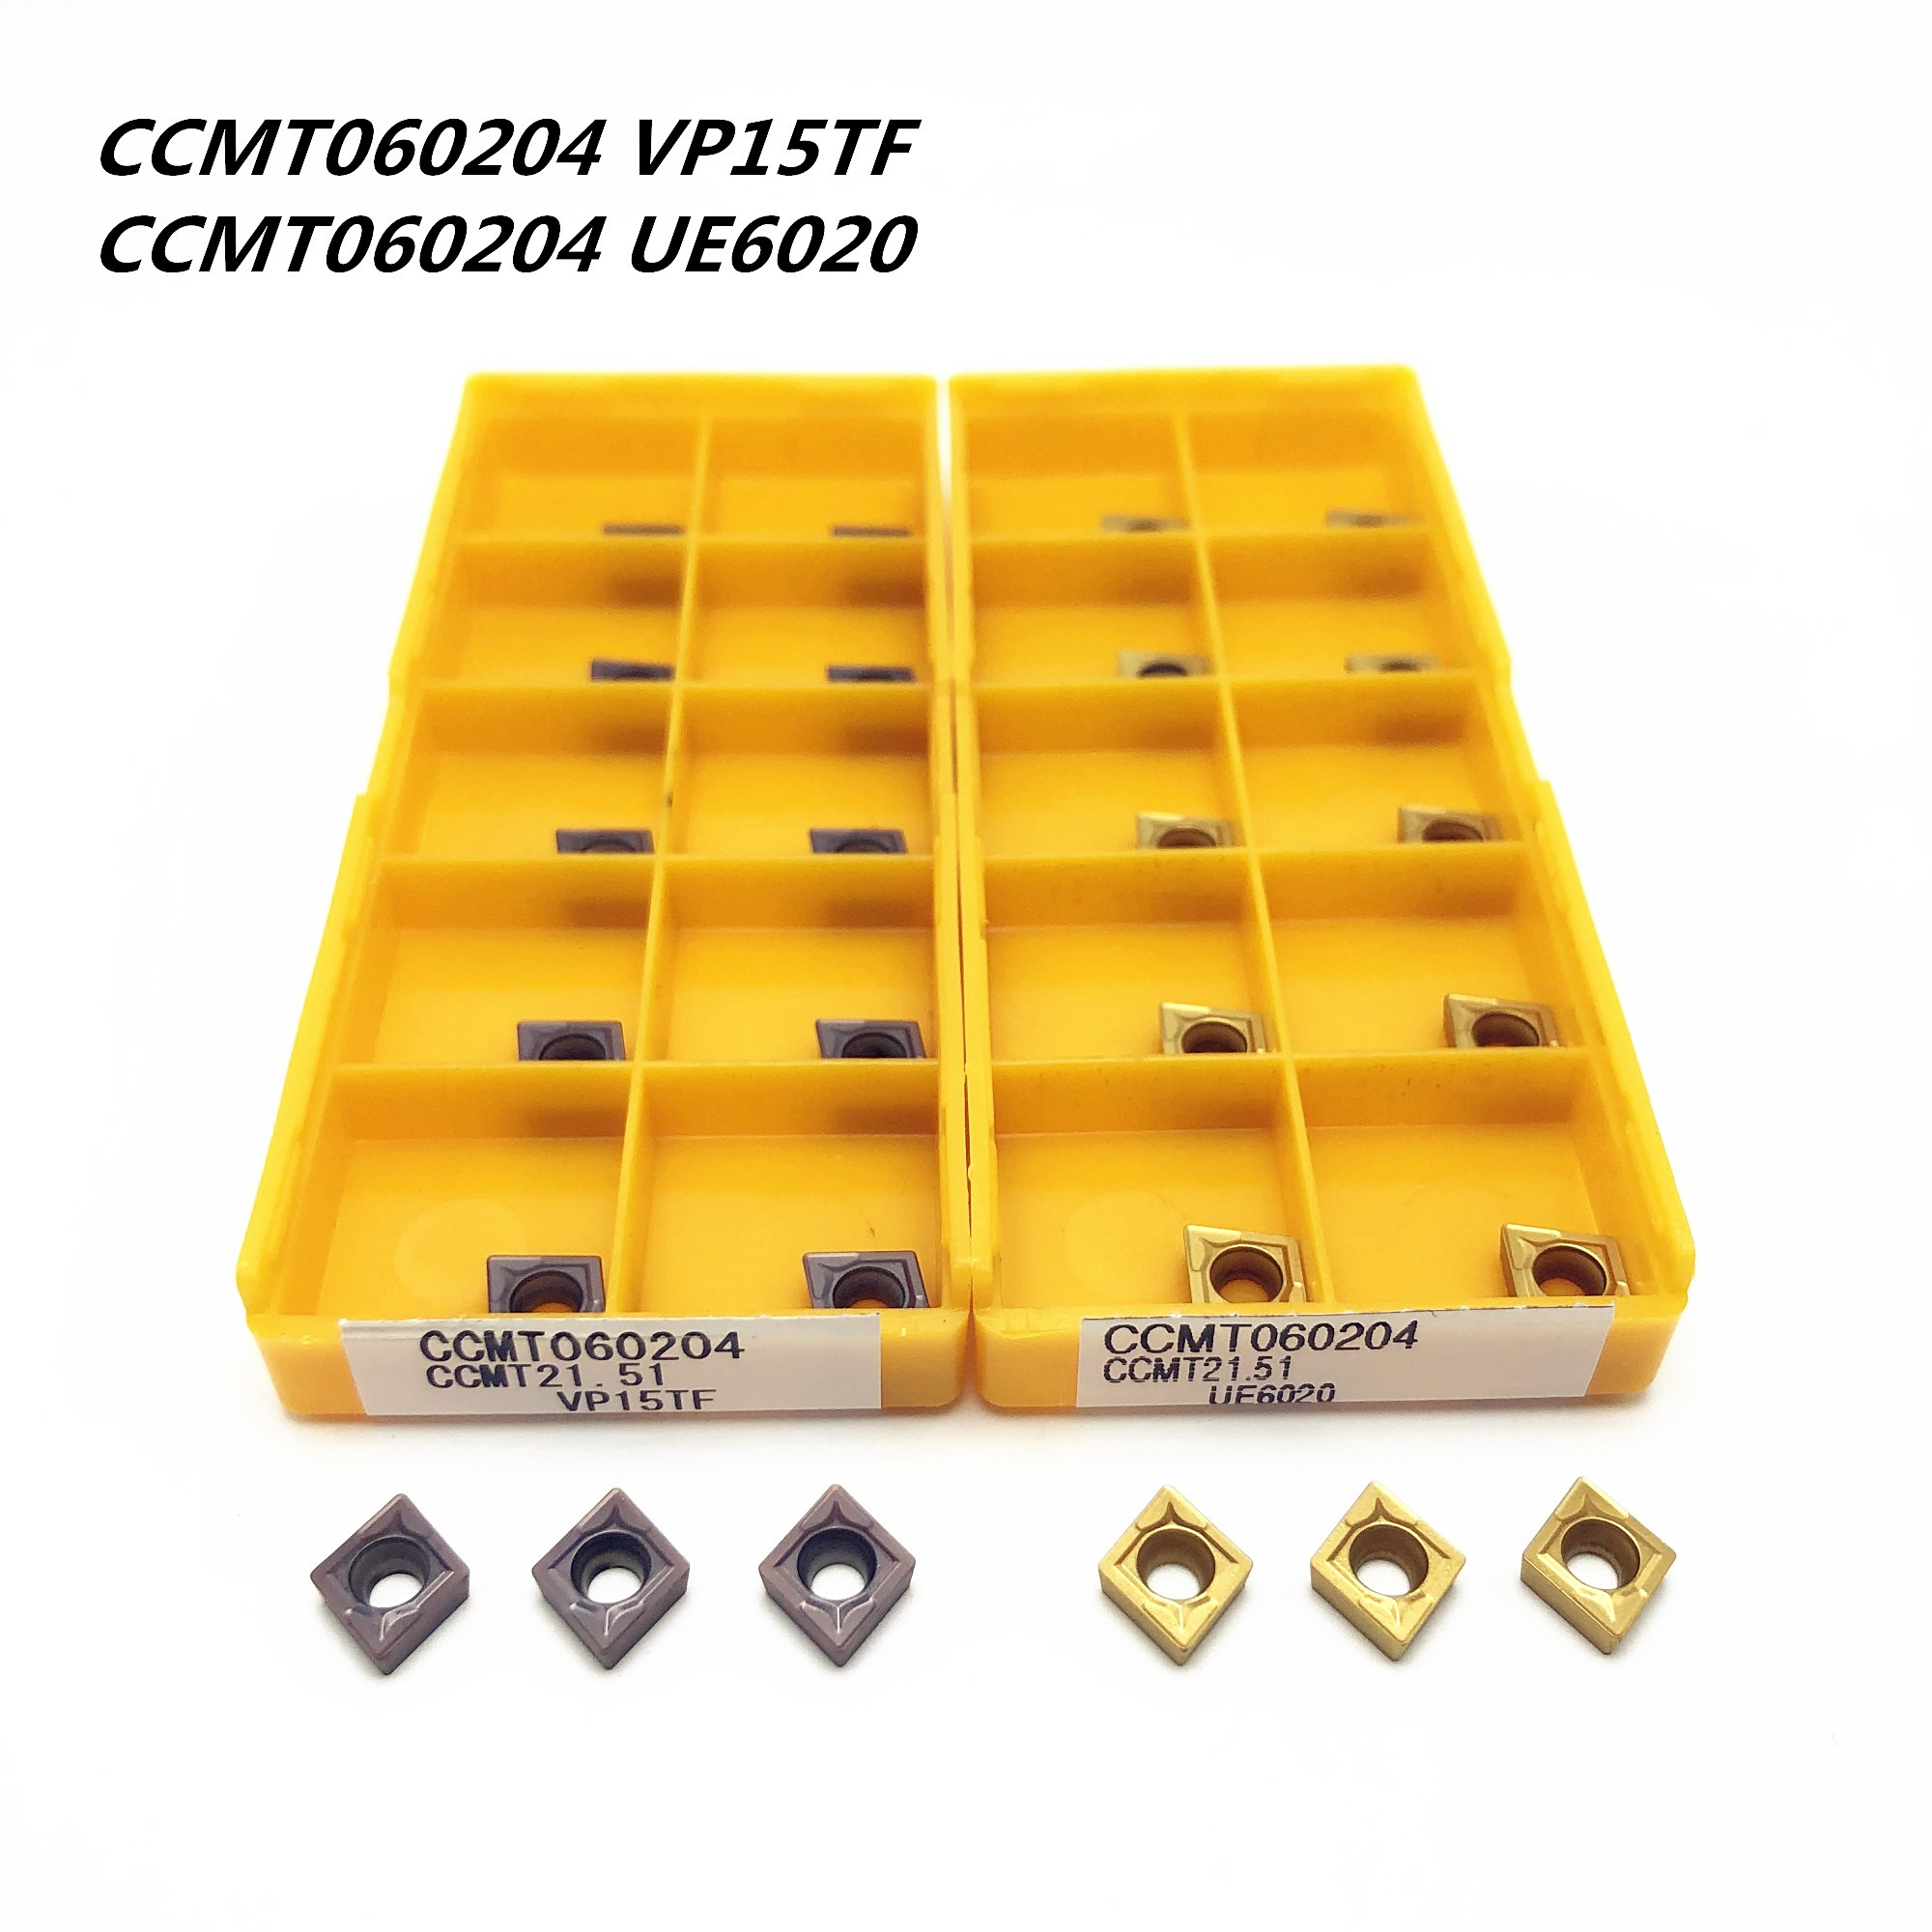 10pcs CCMT060204 VP15TF Carbide Inserts Blade for SCLCR Turning Tool Holder Lath